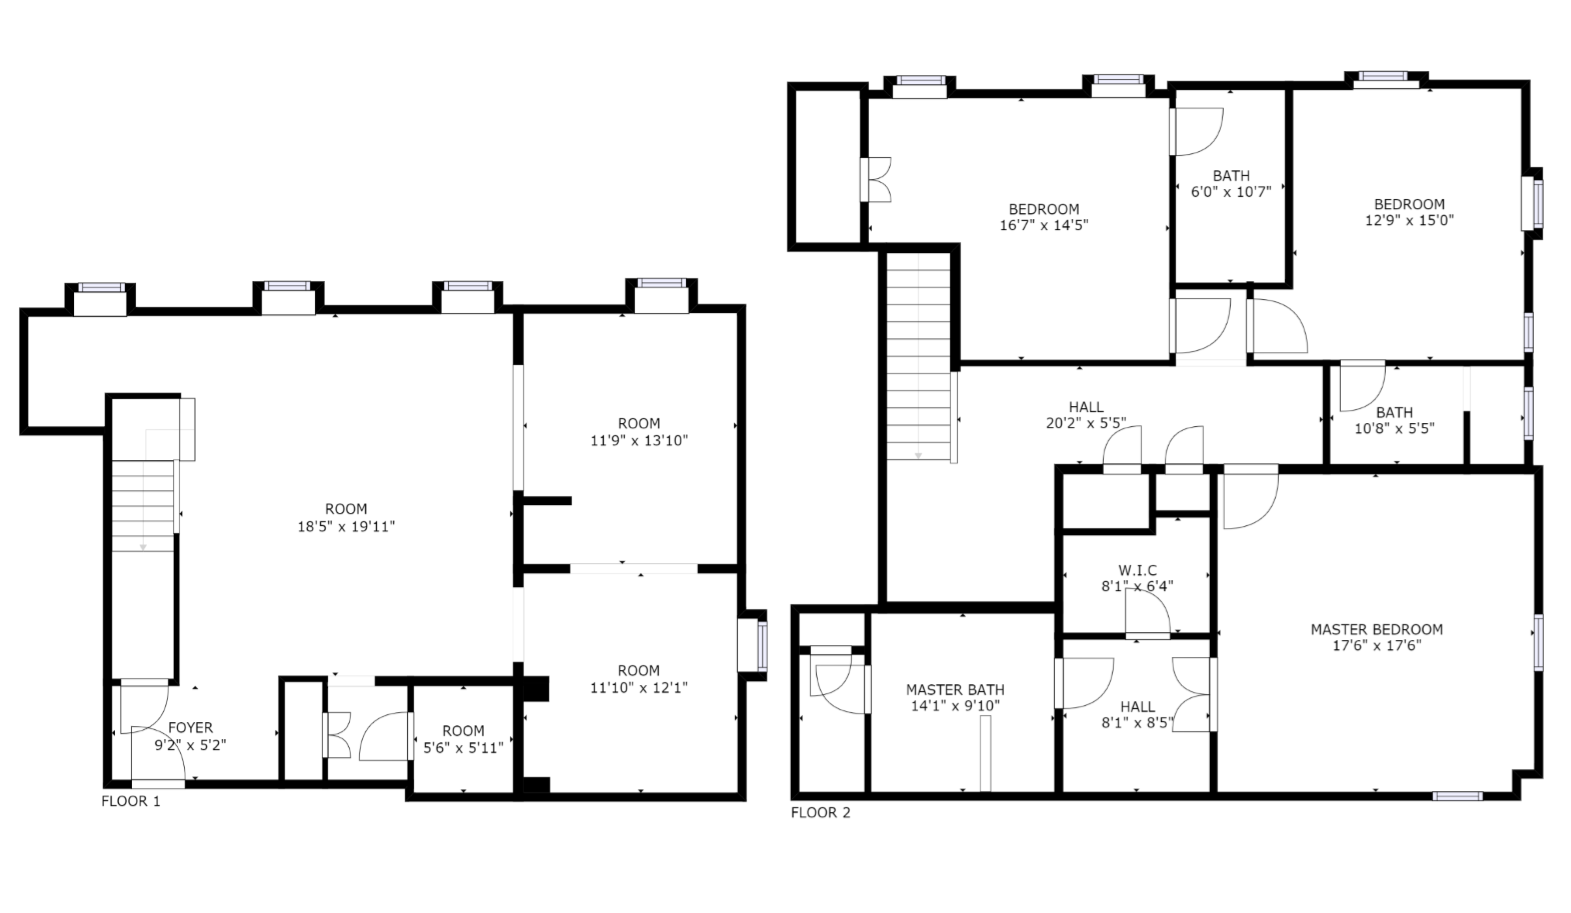 Floor Plan for Water Street Residence Unit C - 3 Bed / 3.5 Bath, Luxury Apartment